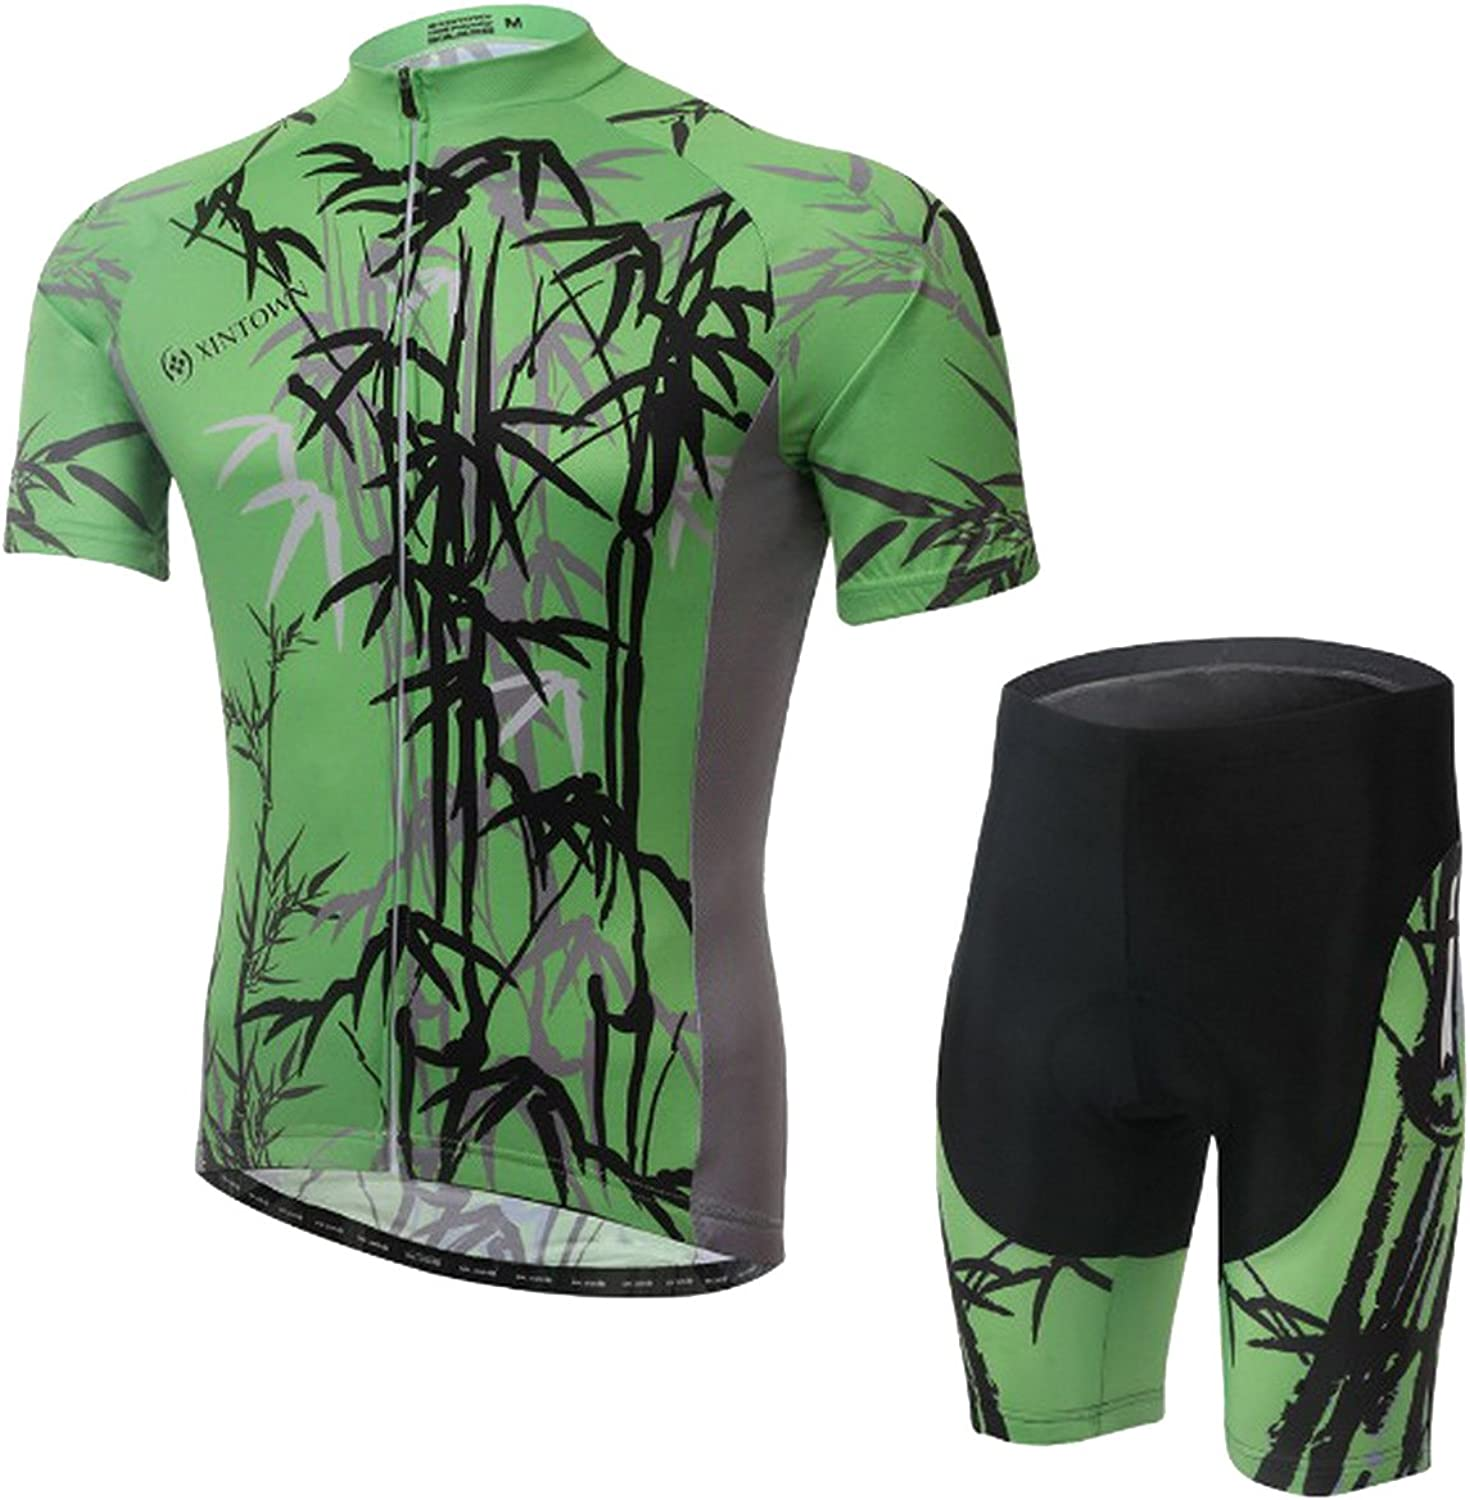 Summer Men's Cycling Clothing Suit Breathable UV Predection Short Sleeve Shorts Set Green